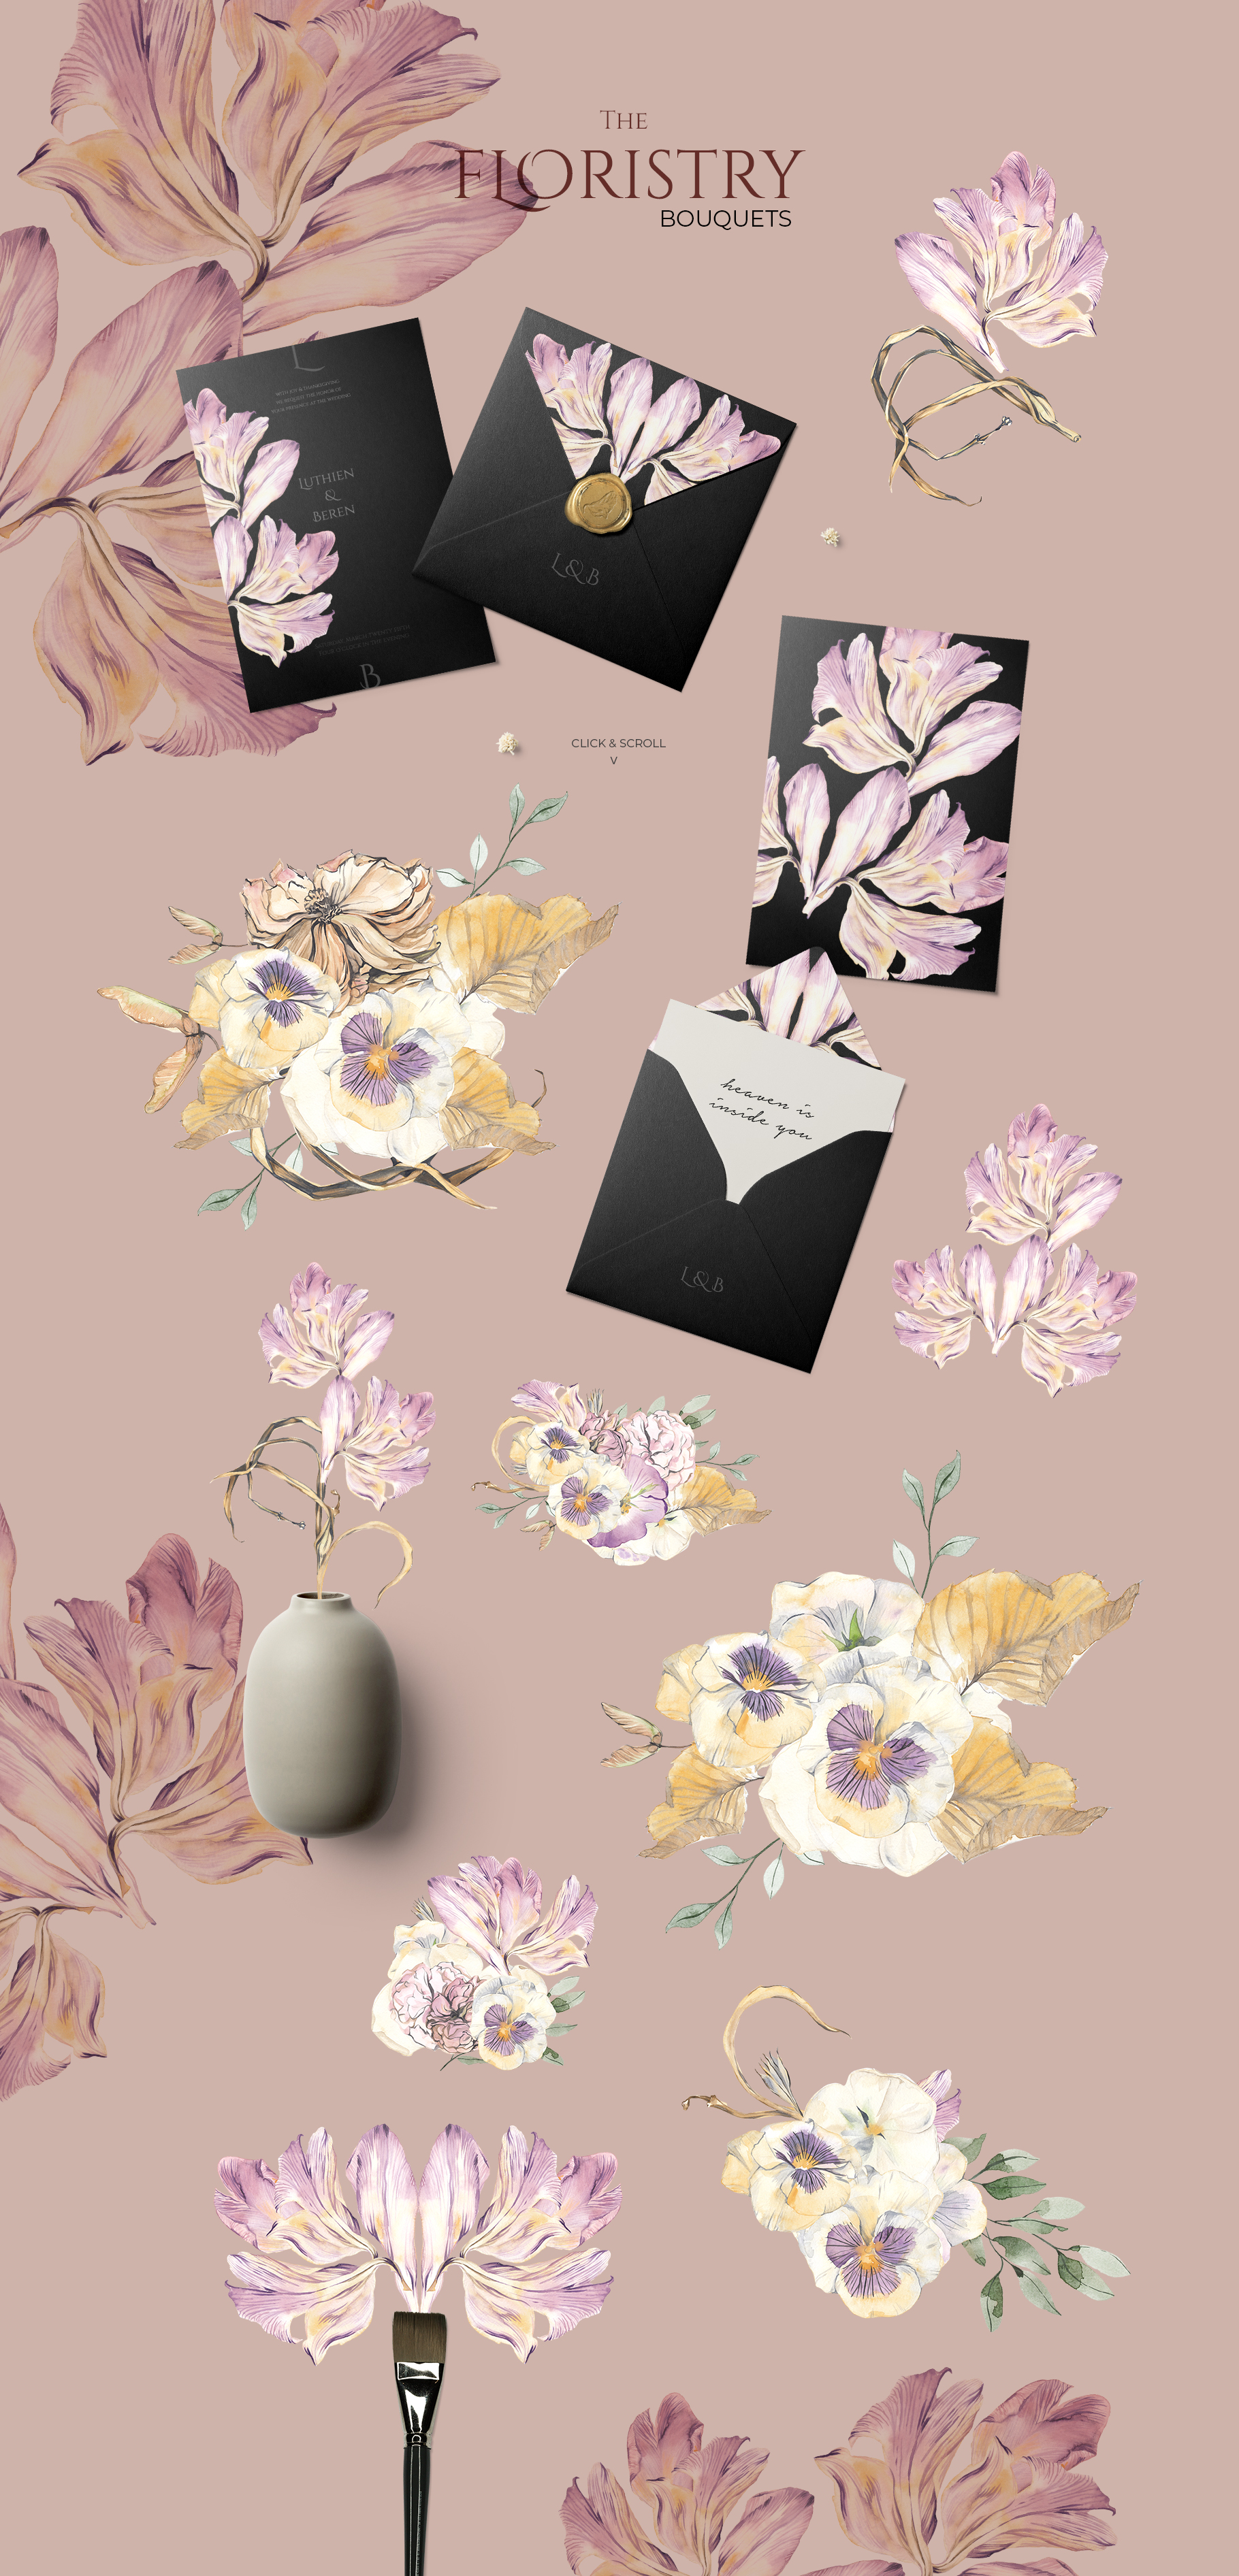 THE FLORISTRY floral collection - watercolor, line art, real example image 5